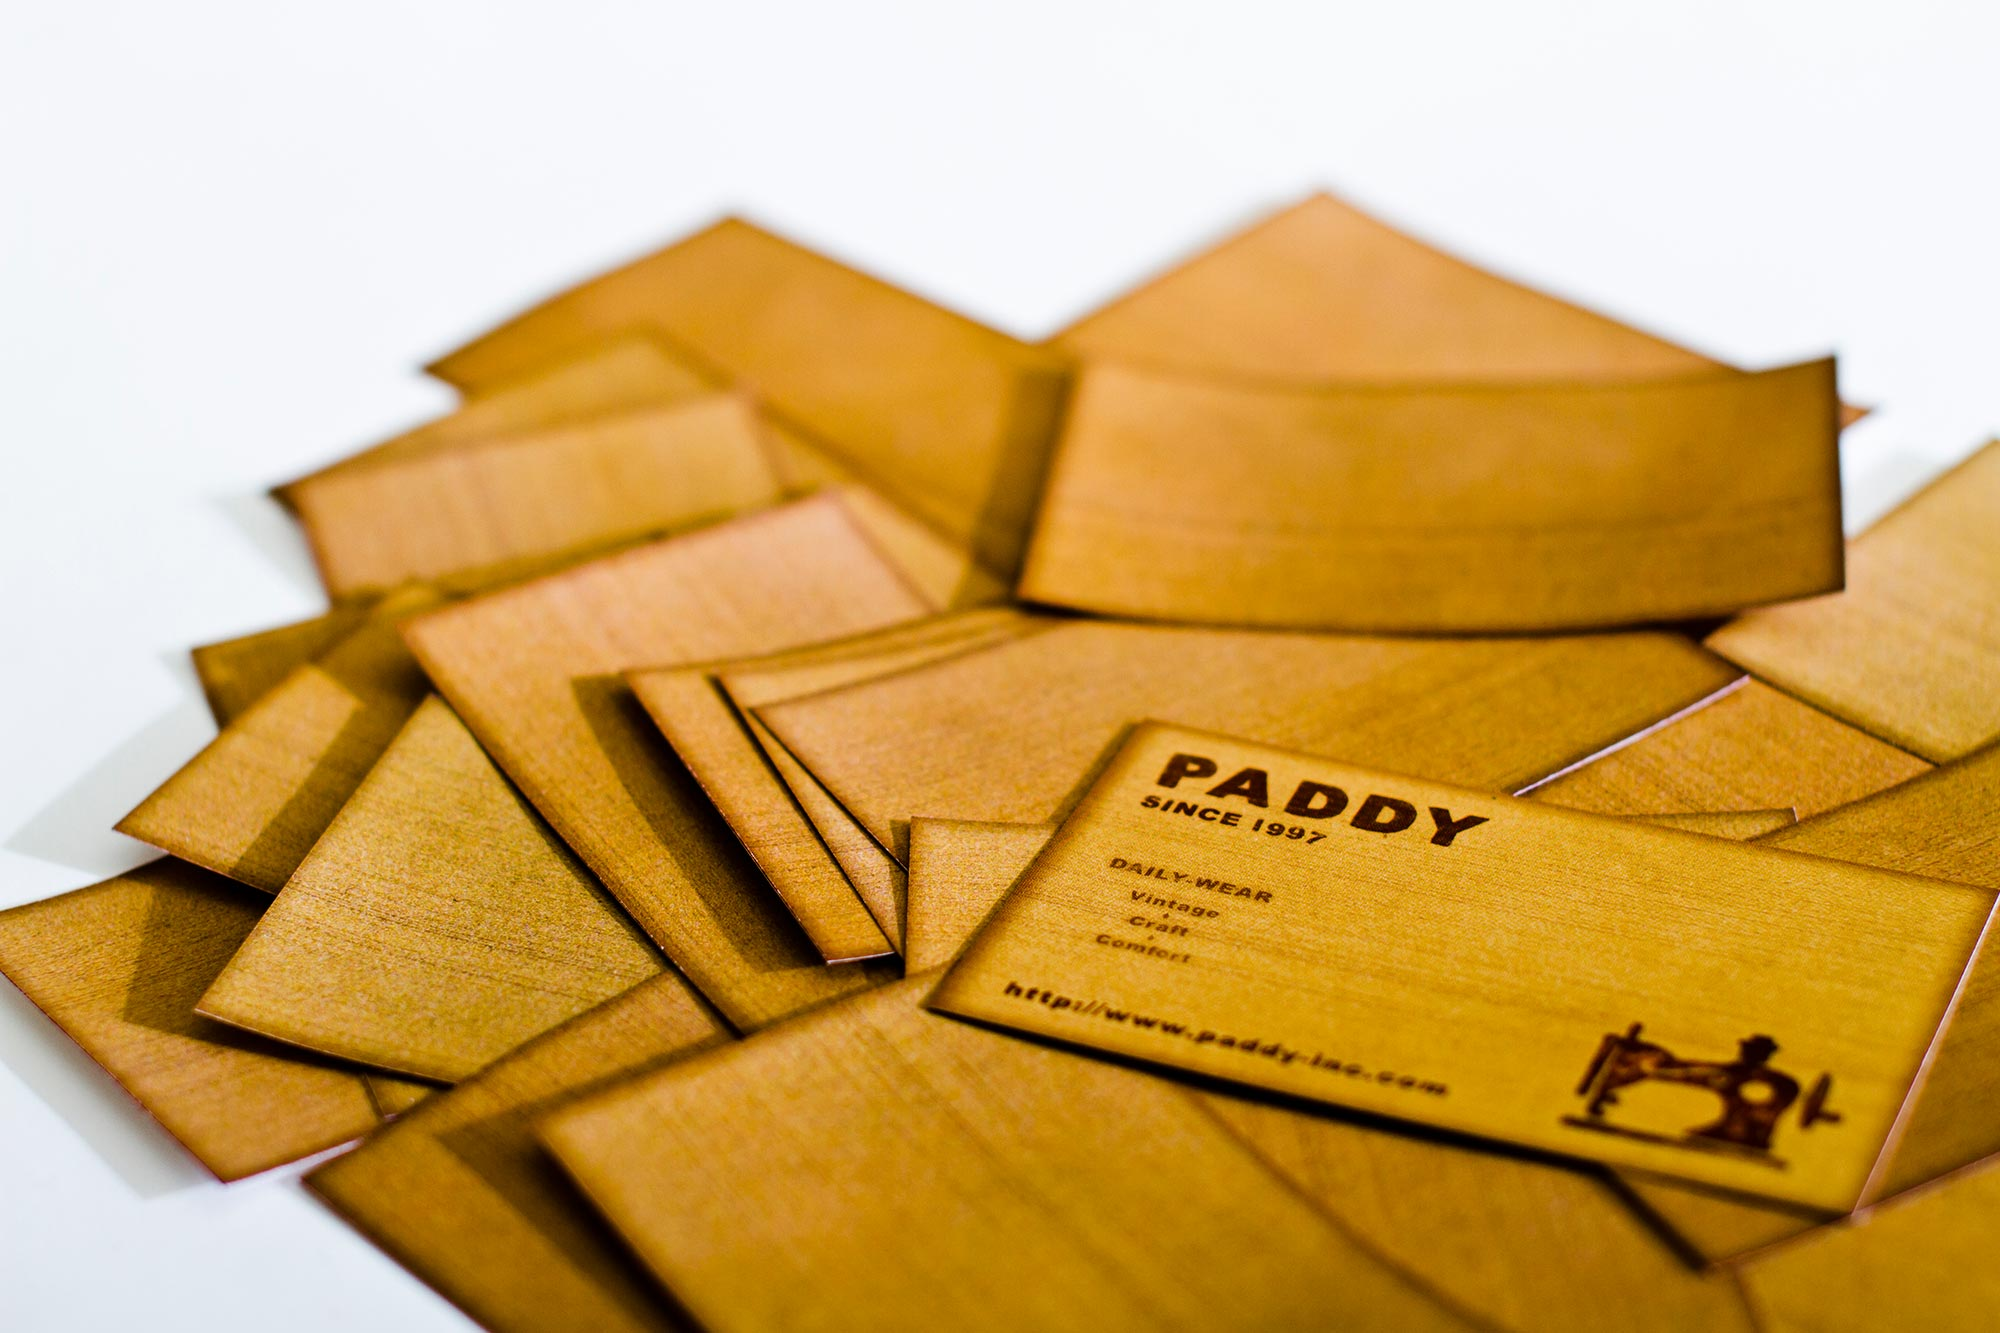 042paddy_card